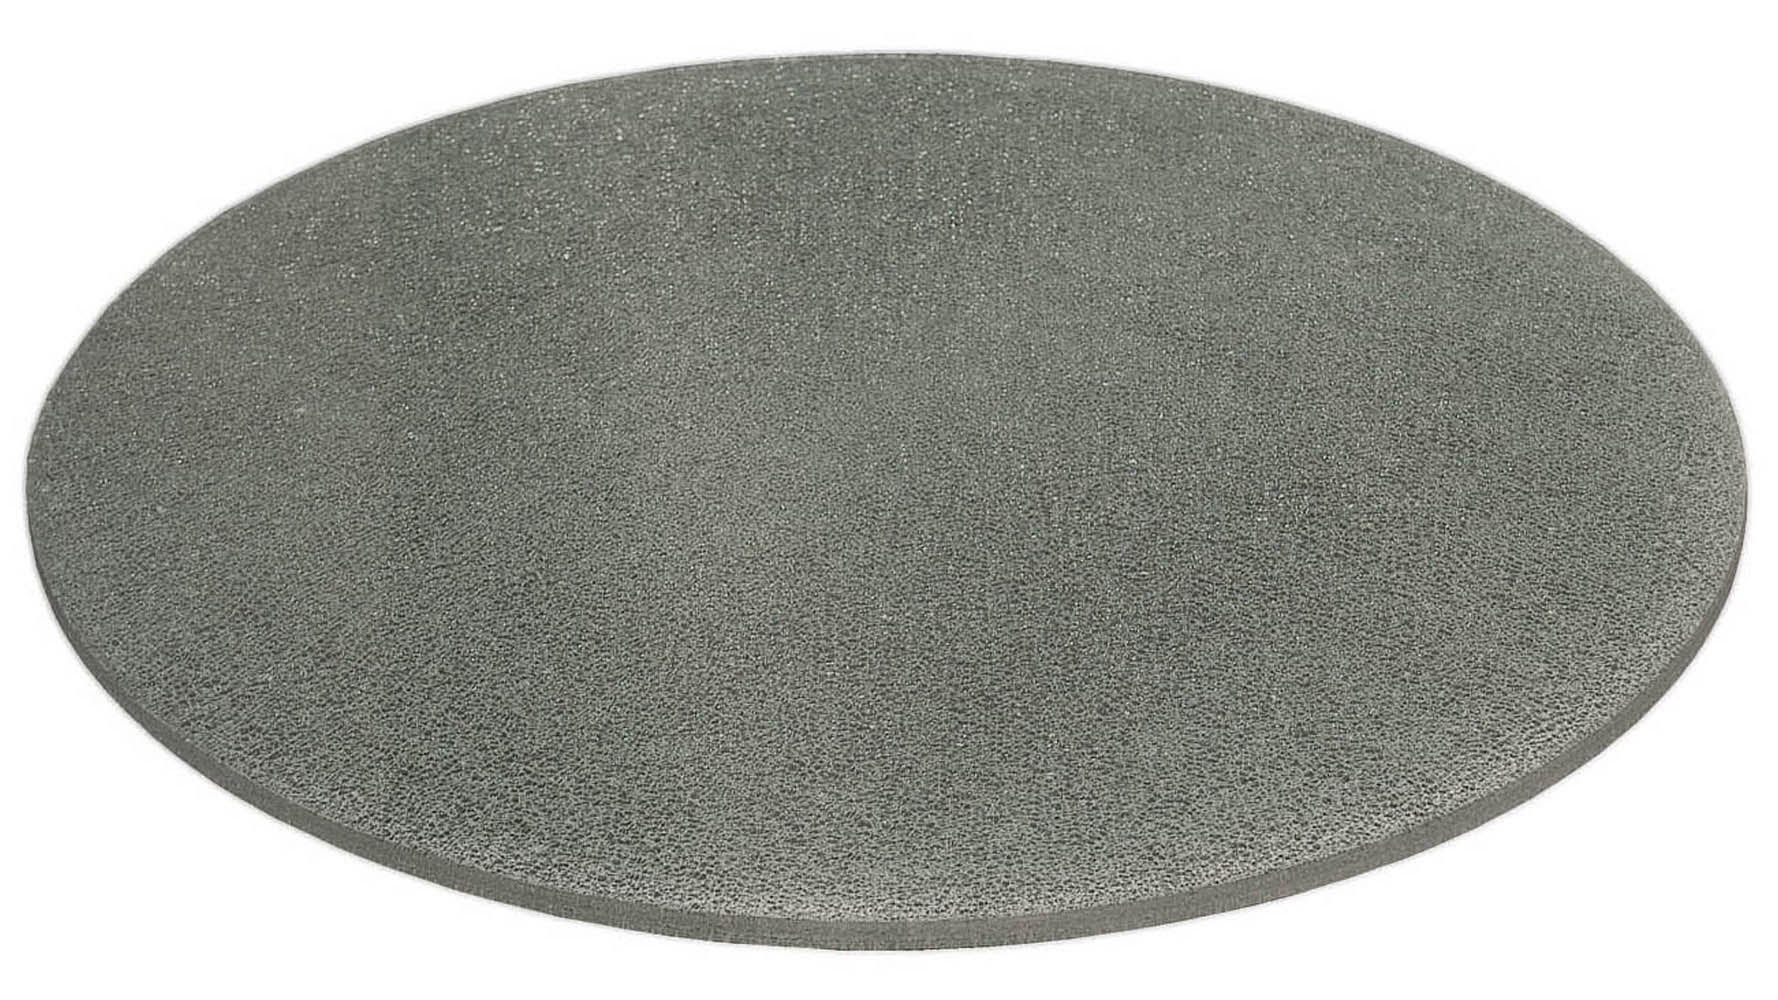 Cointet 60 Inch Round Dining Table - Crackle Glass | Zuri ...